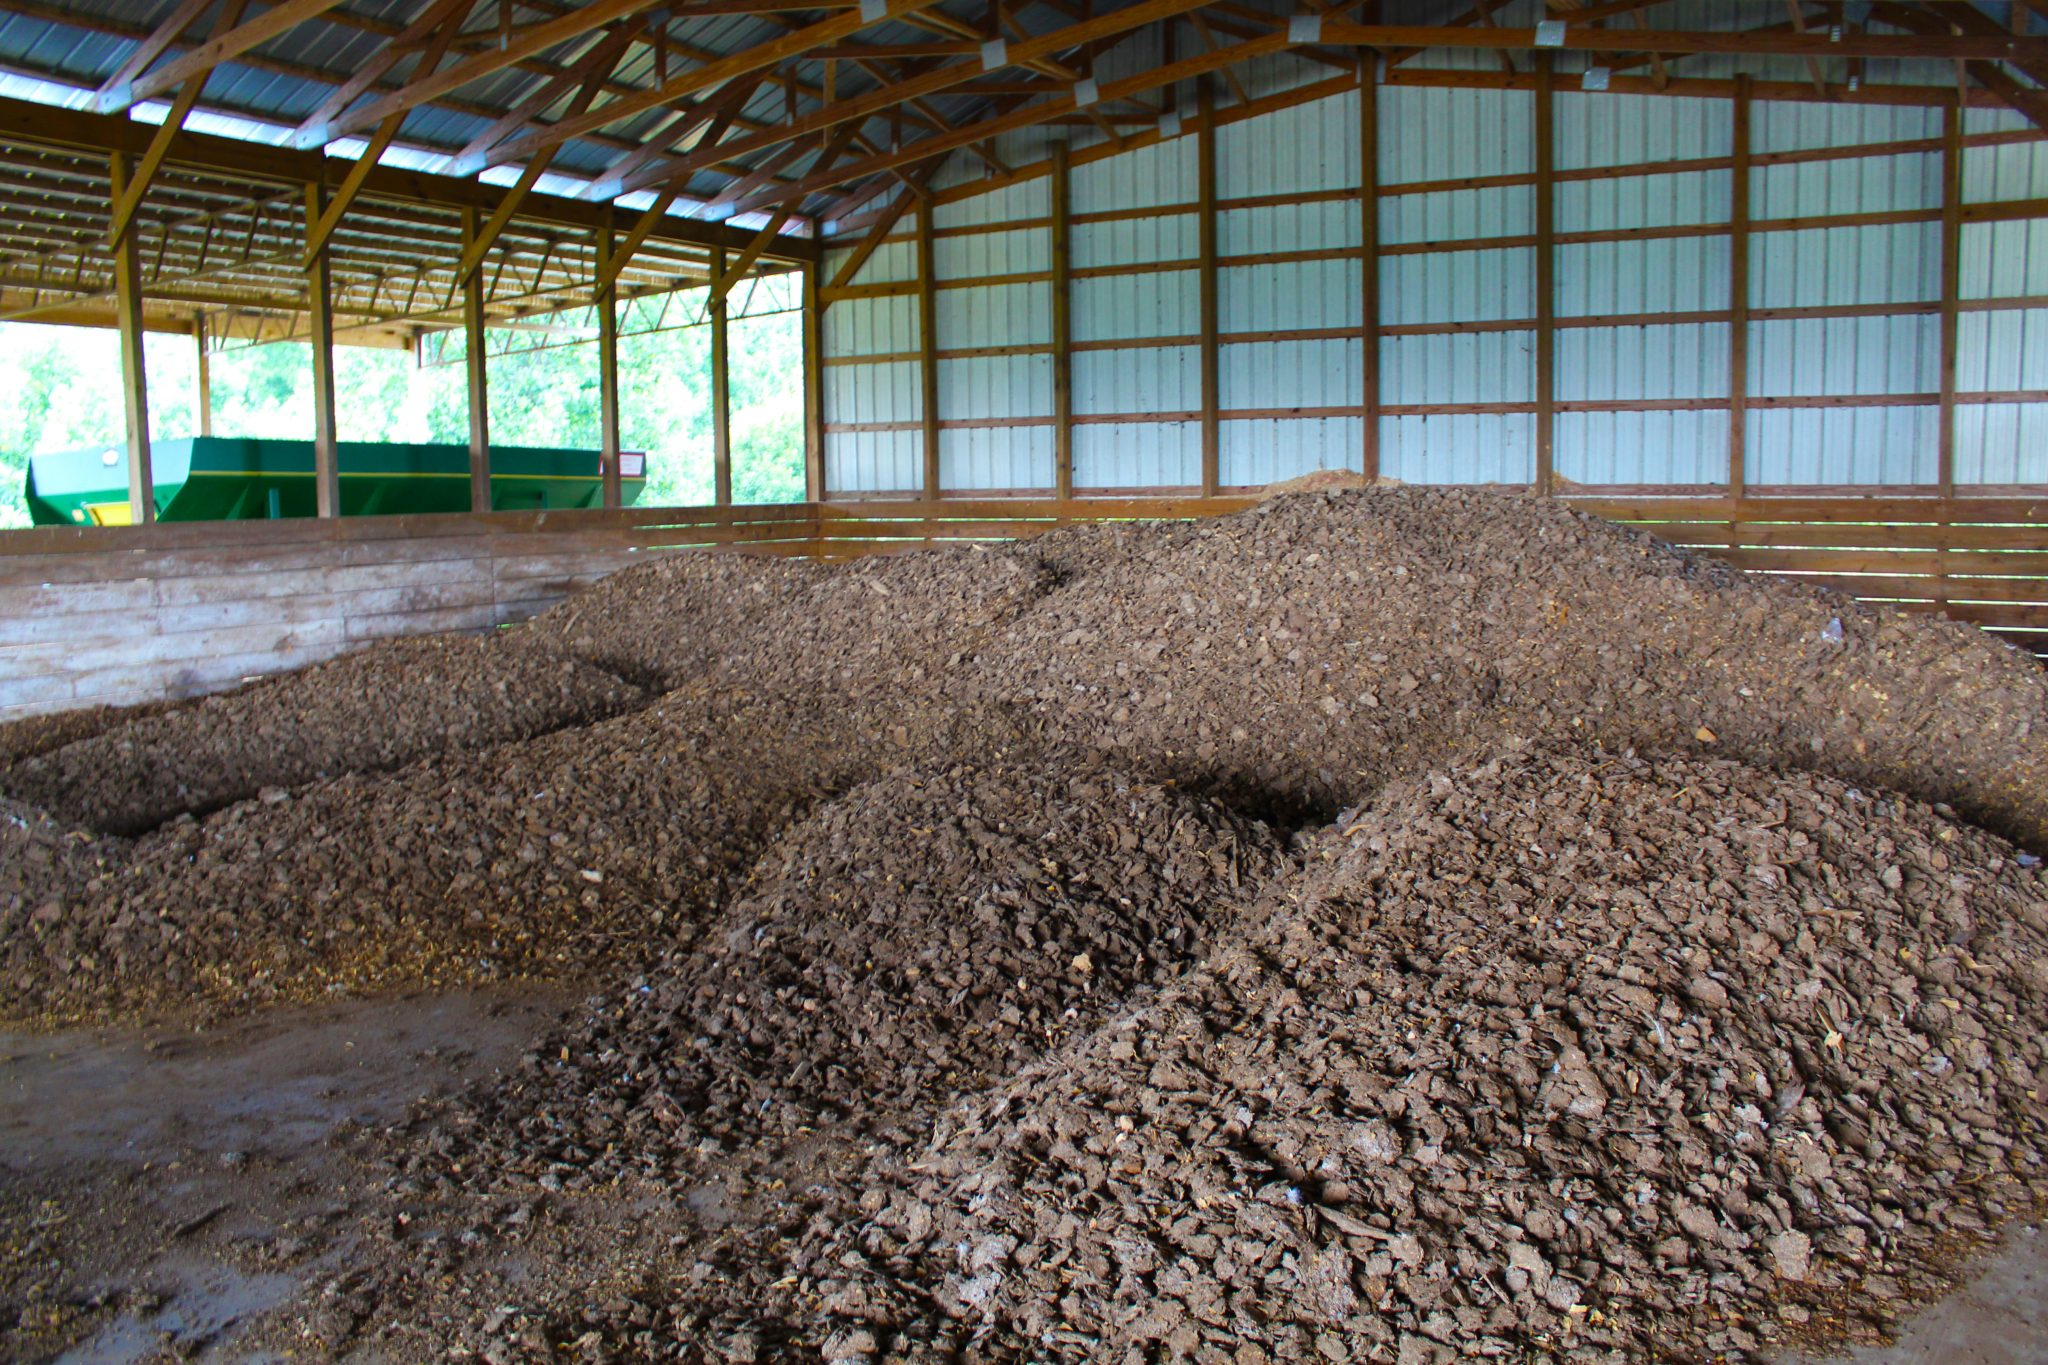 Figure 1. Broiler litter inside a poultry mega-house (left) and caked litter stored in a dry-stack barn (right)